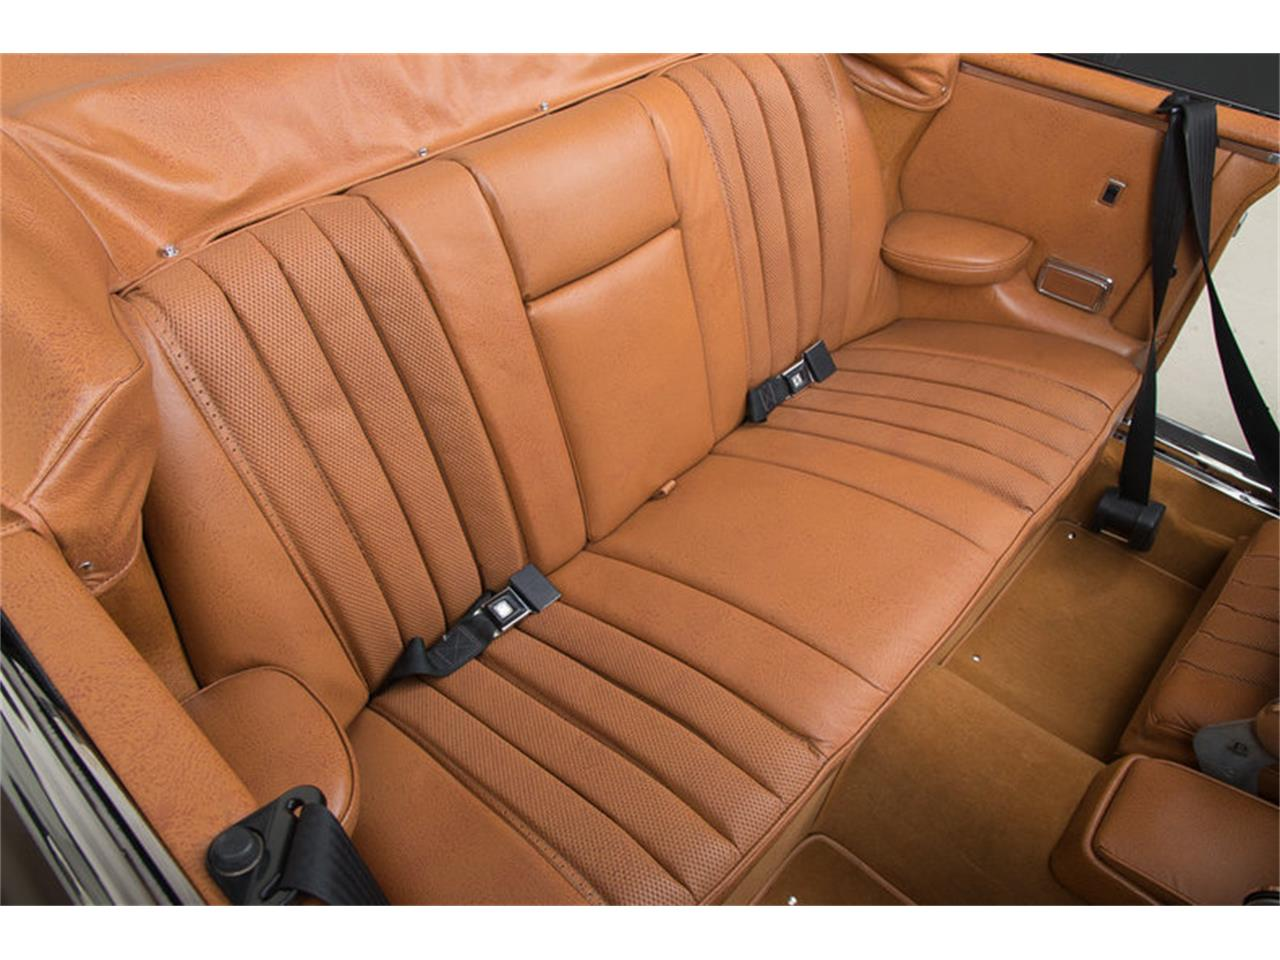 Large Picture of Classic 1971 280 SE 3.5 Cabriolet located in California Auction Vehicle Offered by Canepa - G0JQ